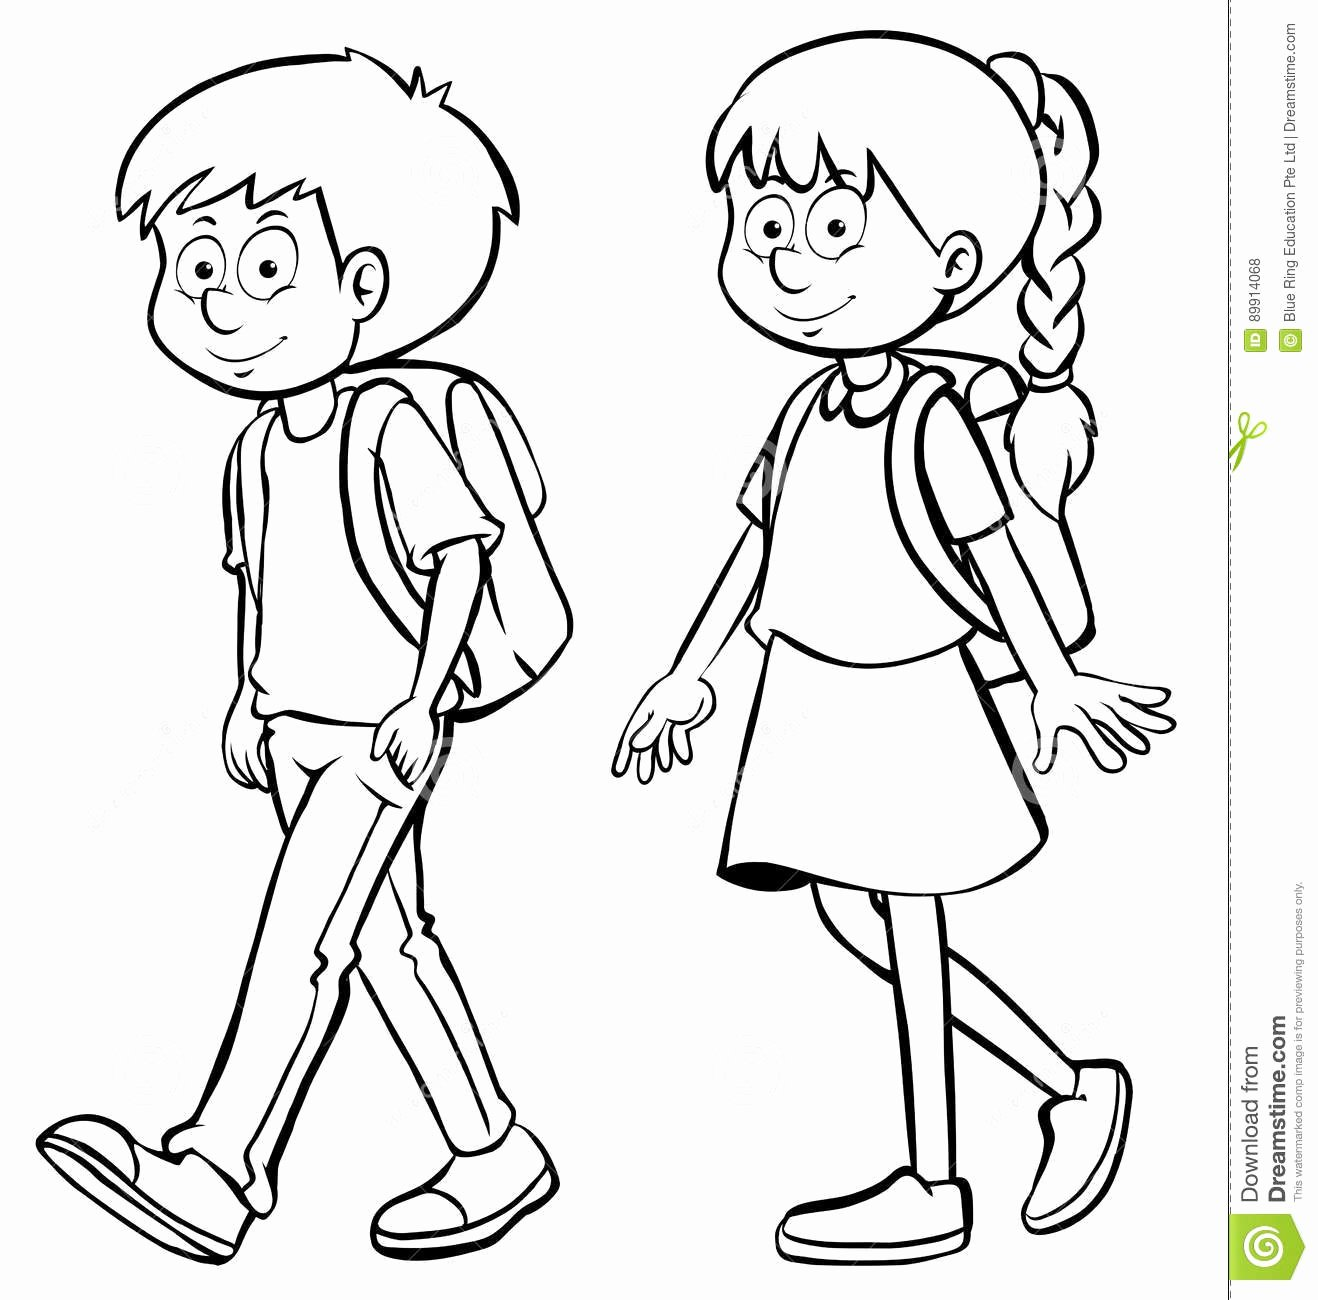 Boy and Girl Template Unique Human Outline for Boy and Girl Stock Illustration